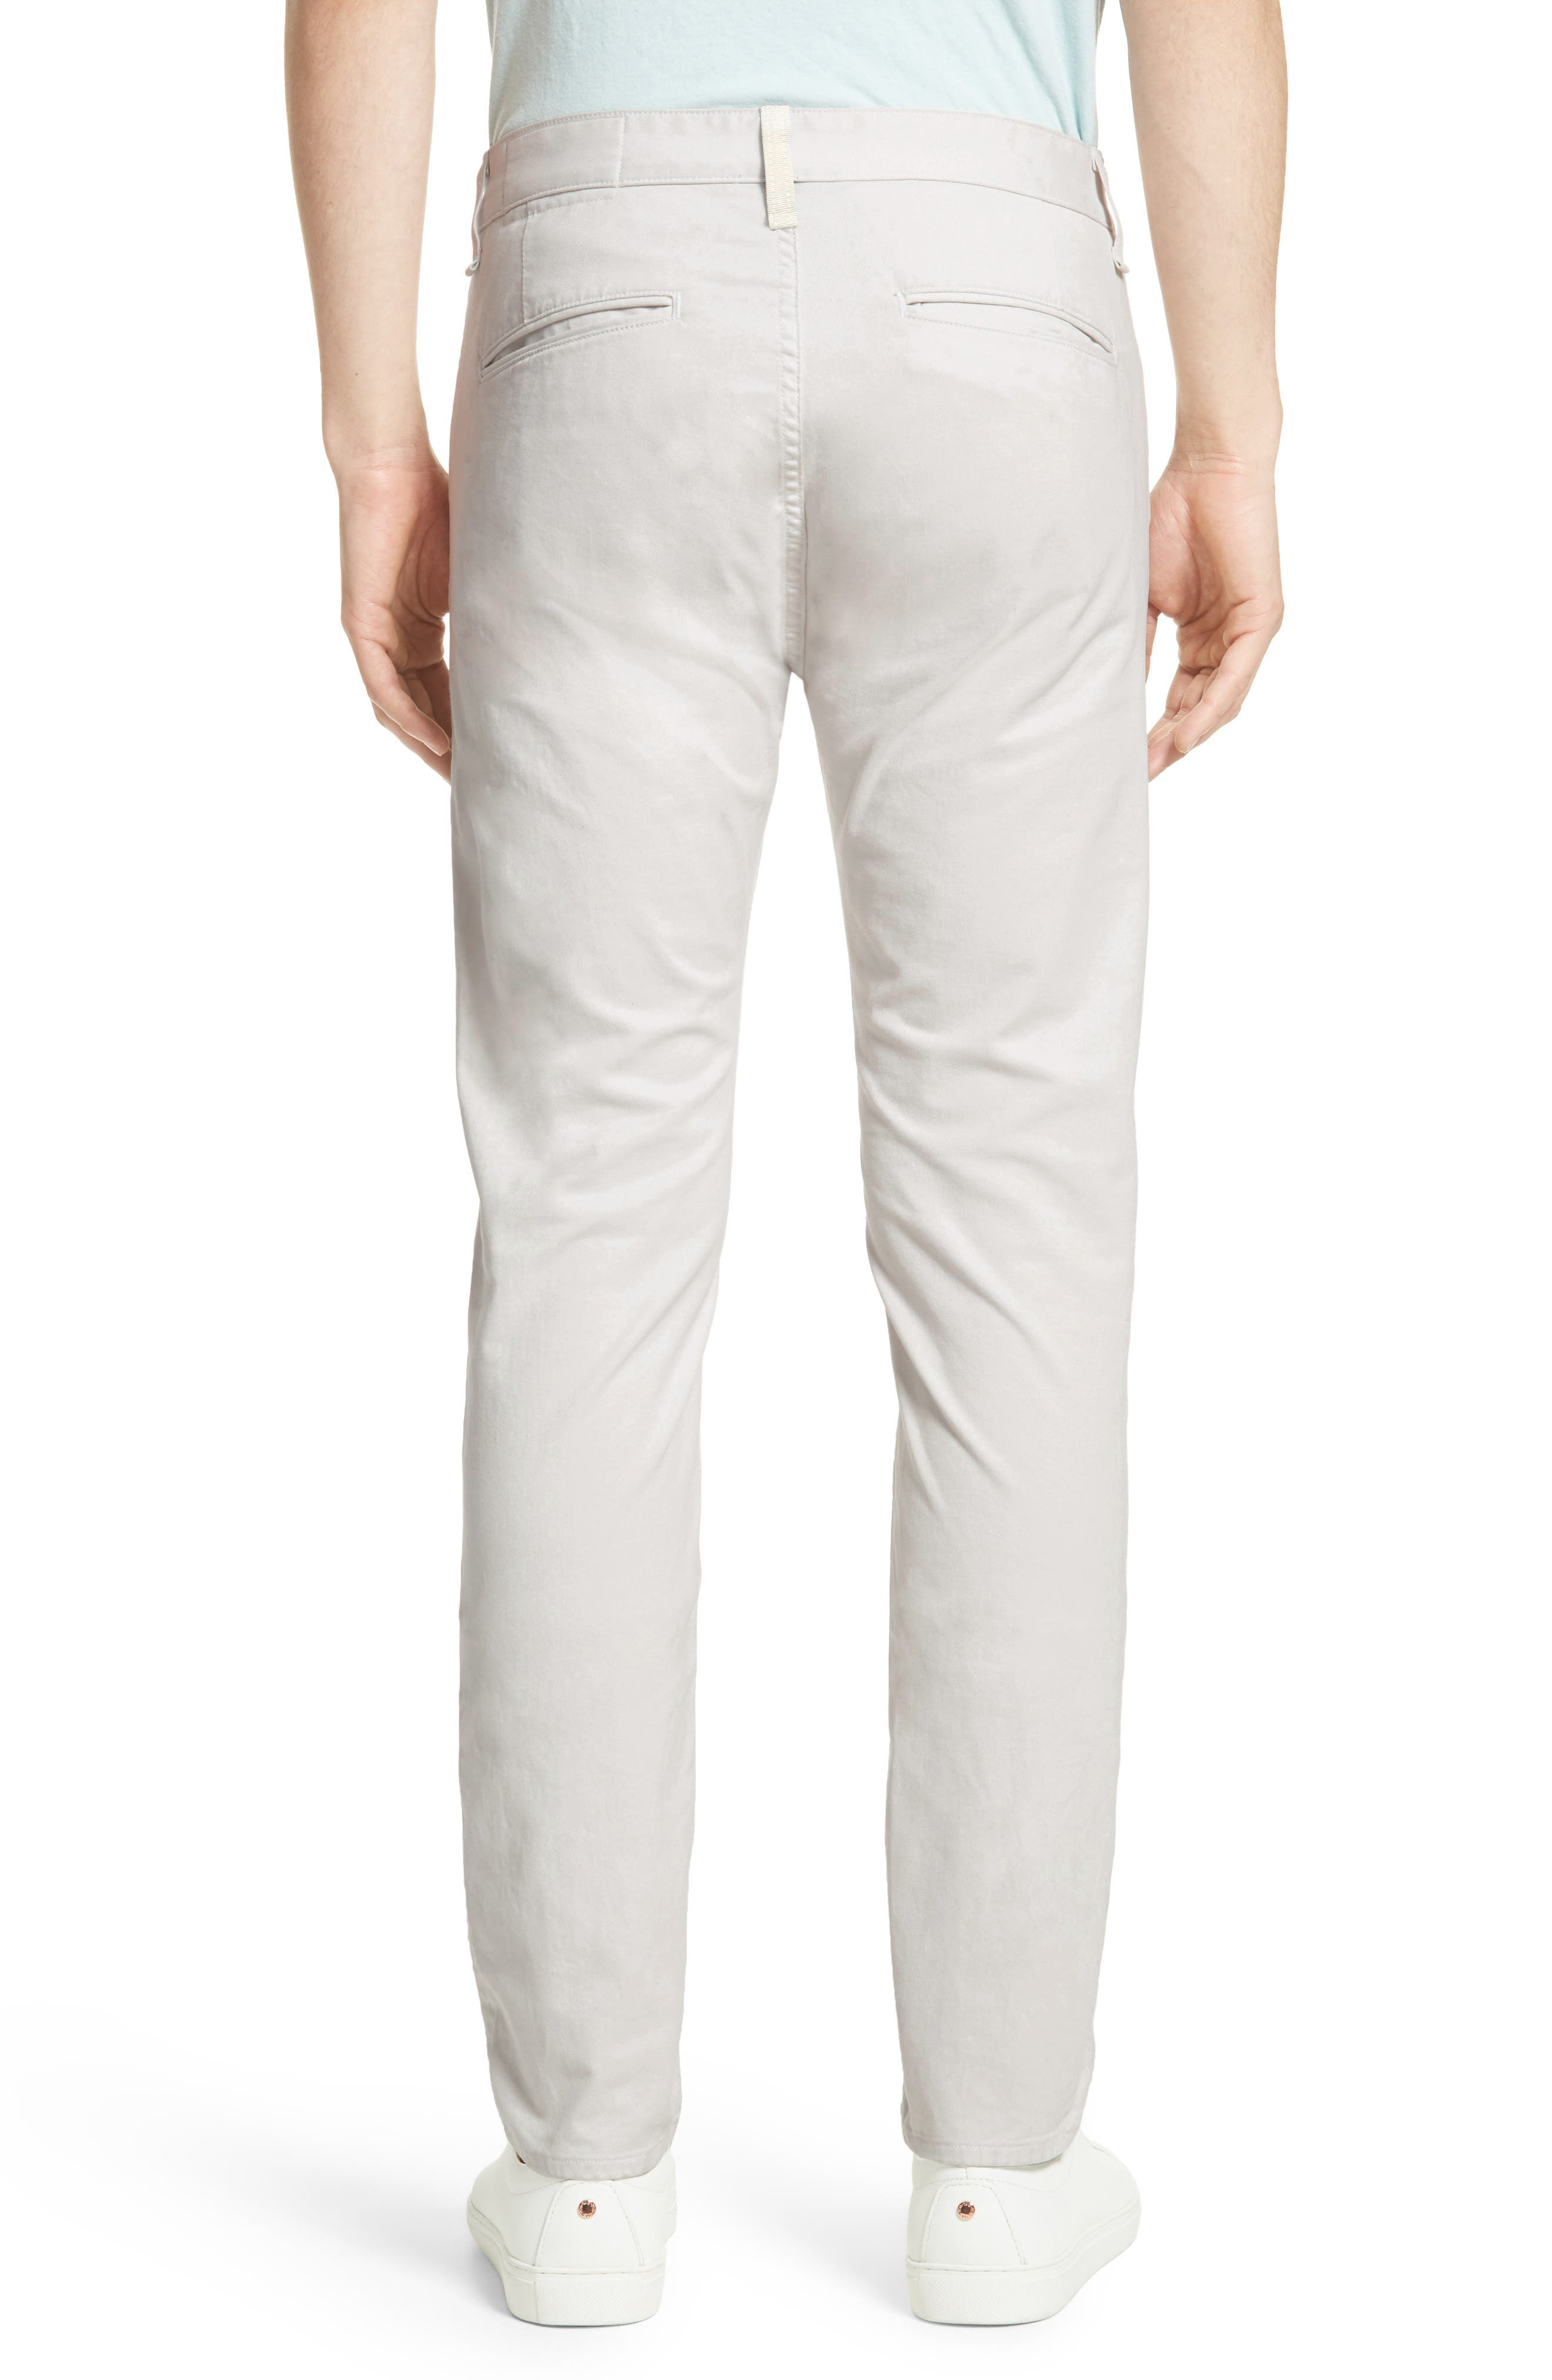 Fit 2 Chinos,                             Alternate thumbnail 2, color,                             Stone